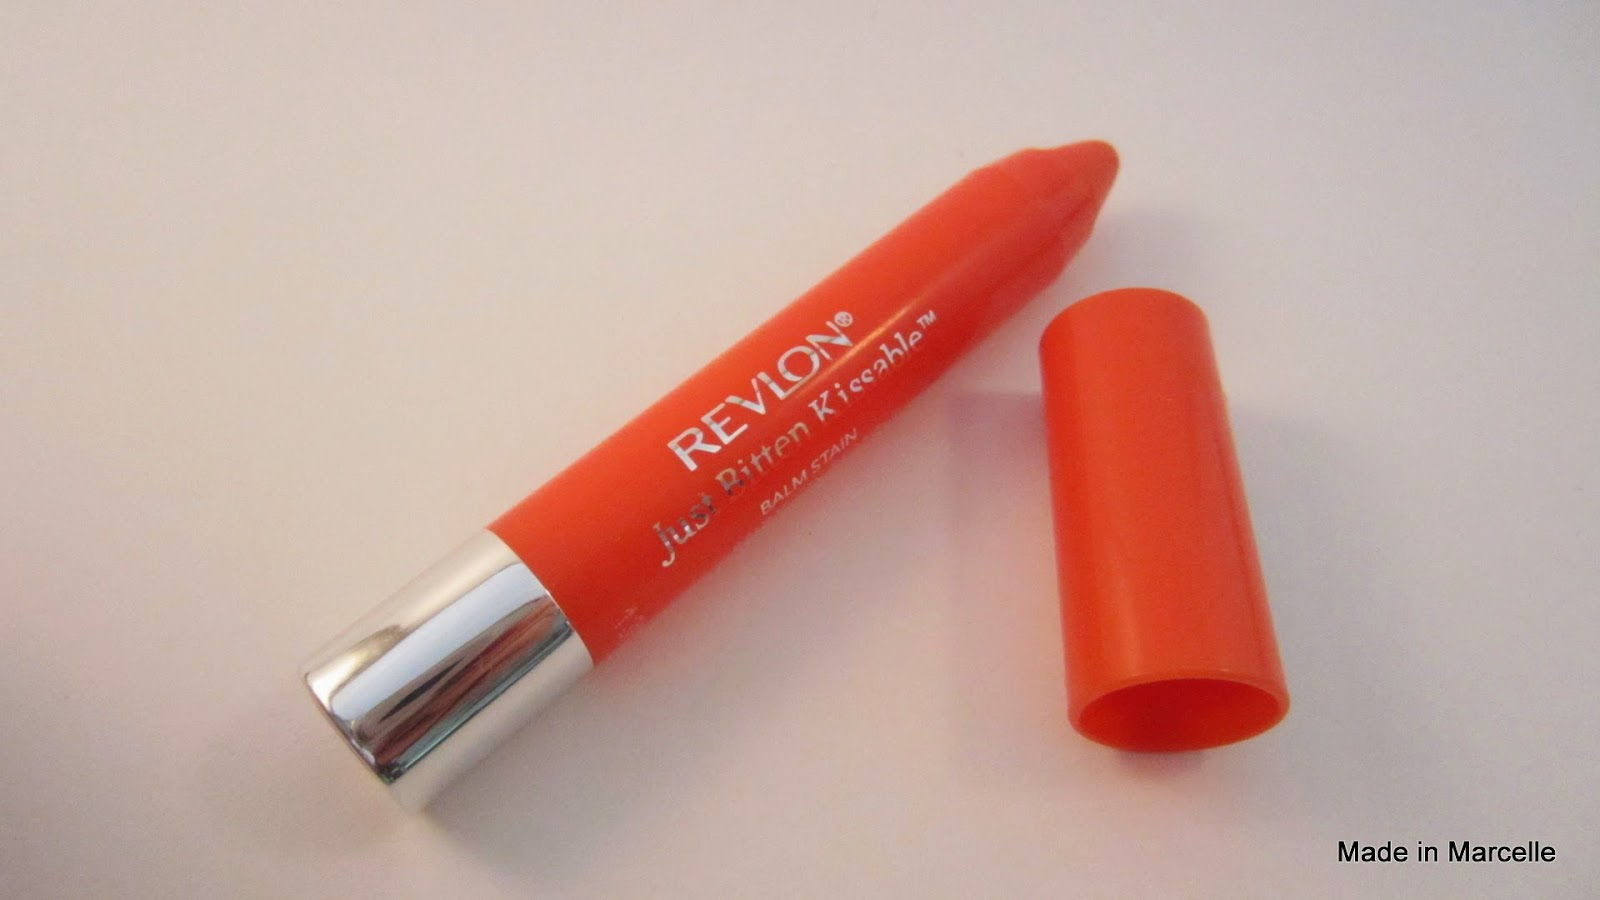 84ac776701f Next, lip products! My new obsession are the Revlon liquid lipsticks. I'm  so glad I discovered these because they are probably as awesome as the  Rimmel ...